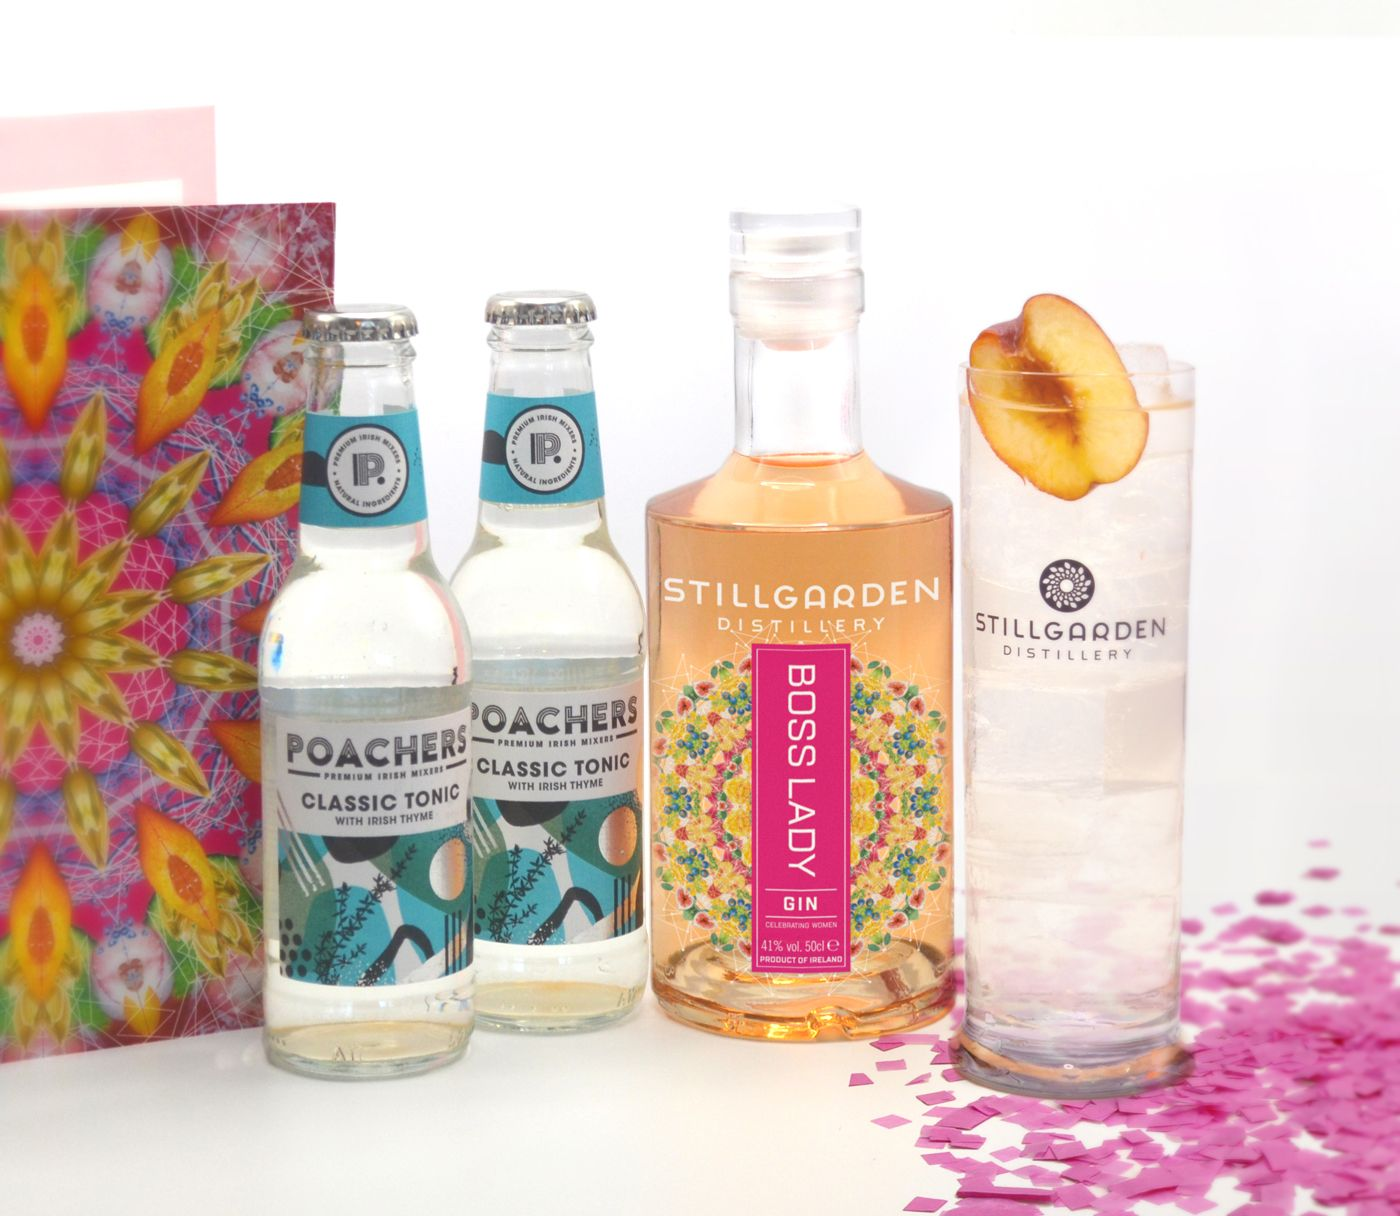 Win The ultimate gin hamper from Stillgarden Distillery